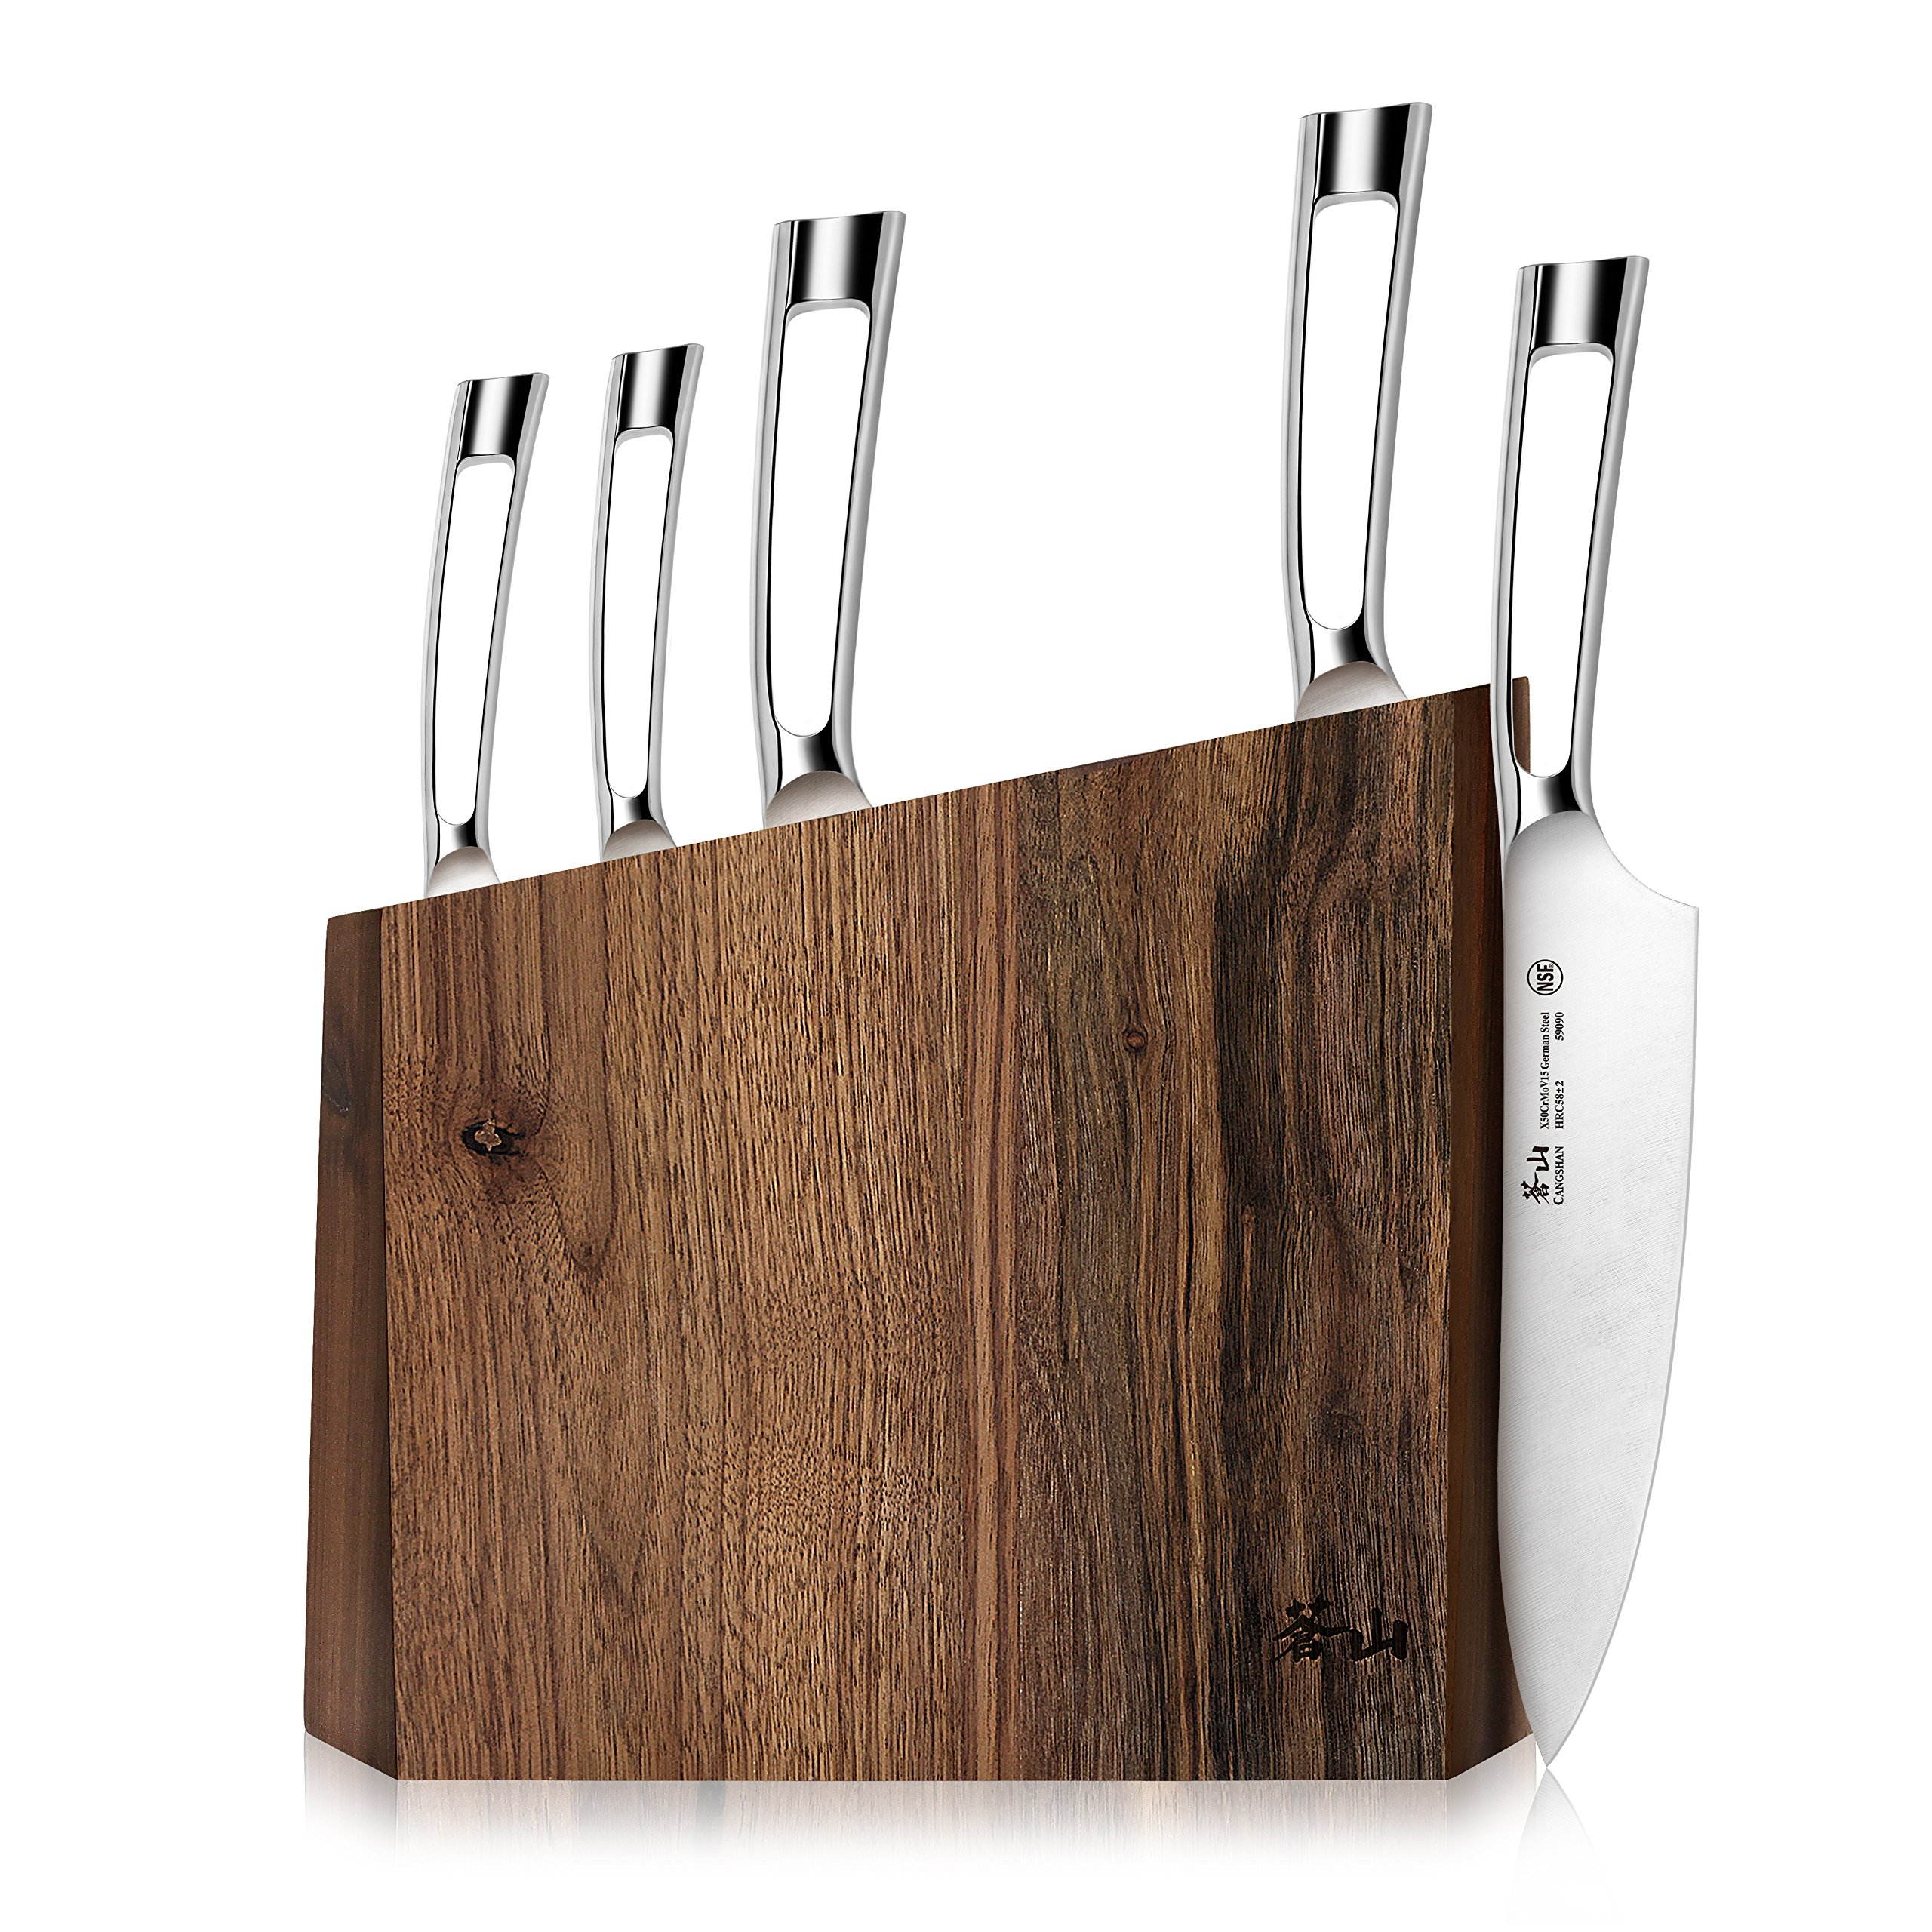 Cangshan N1 Series 61017 6-Piece German Steel Forged Knife Block Set, Walnut Block by Cangshan (Image #9)